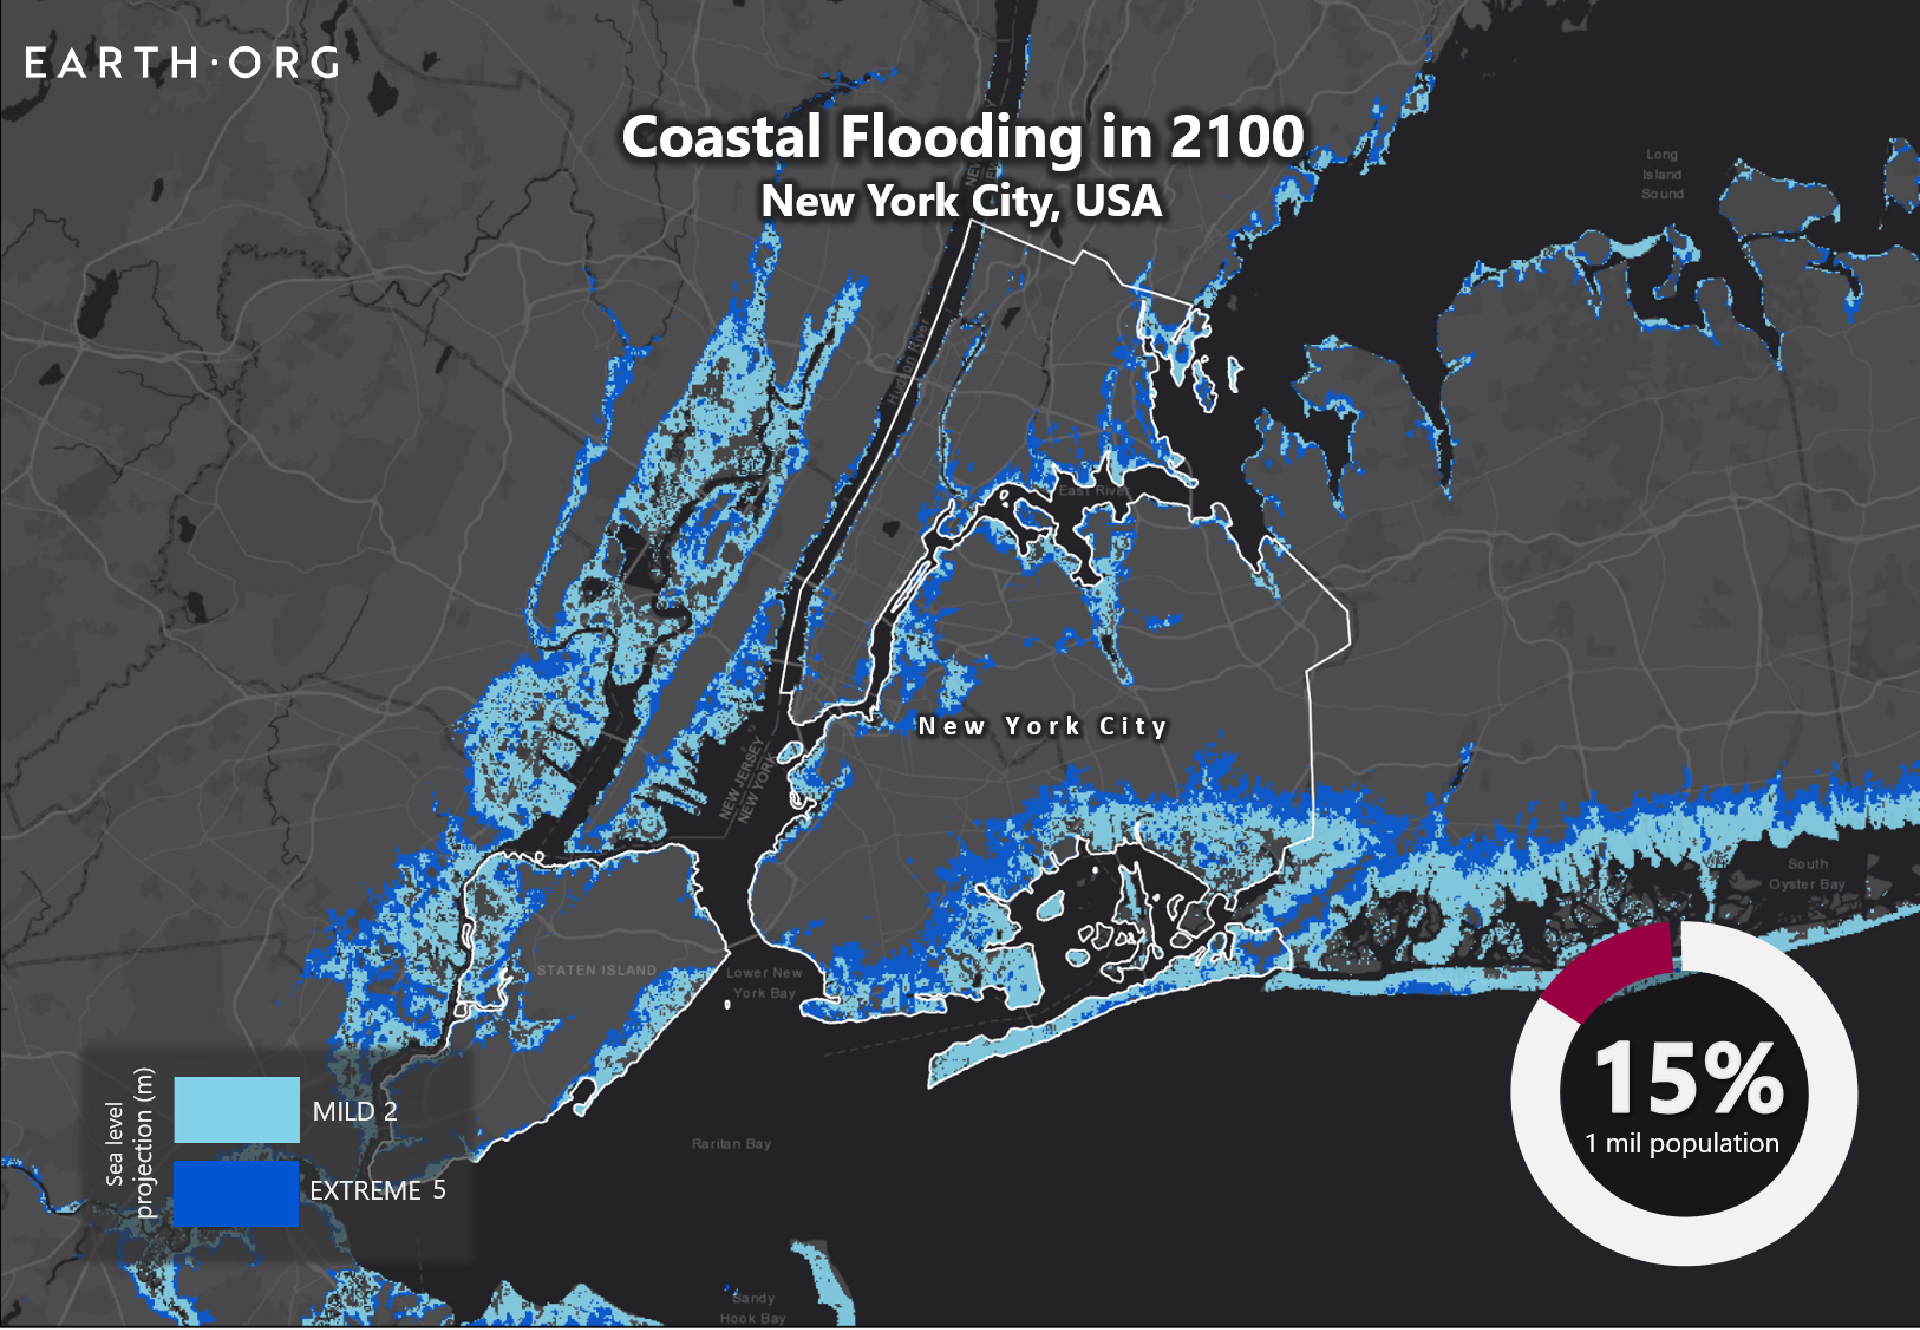 sea level rise by 2100 New York City